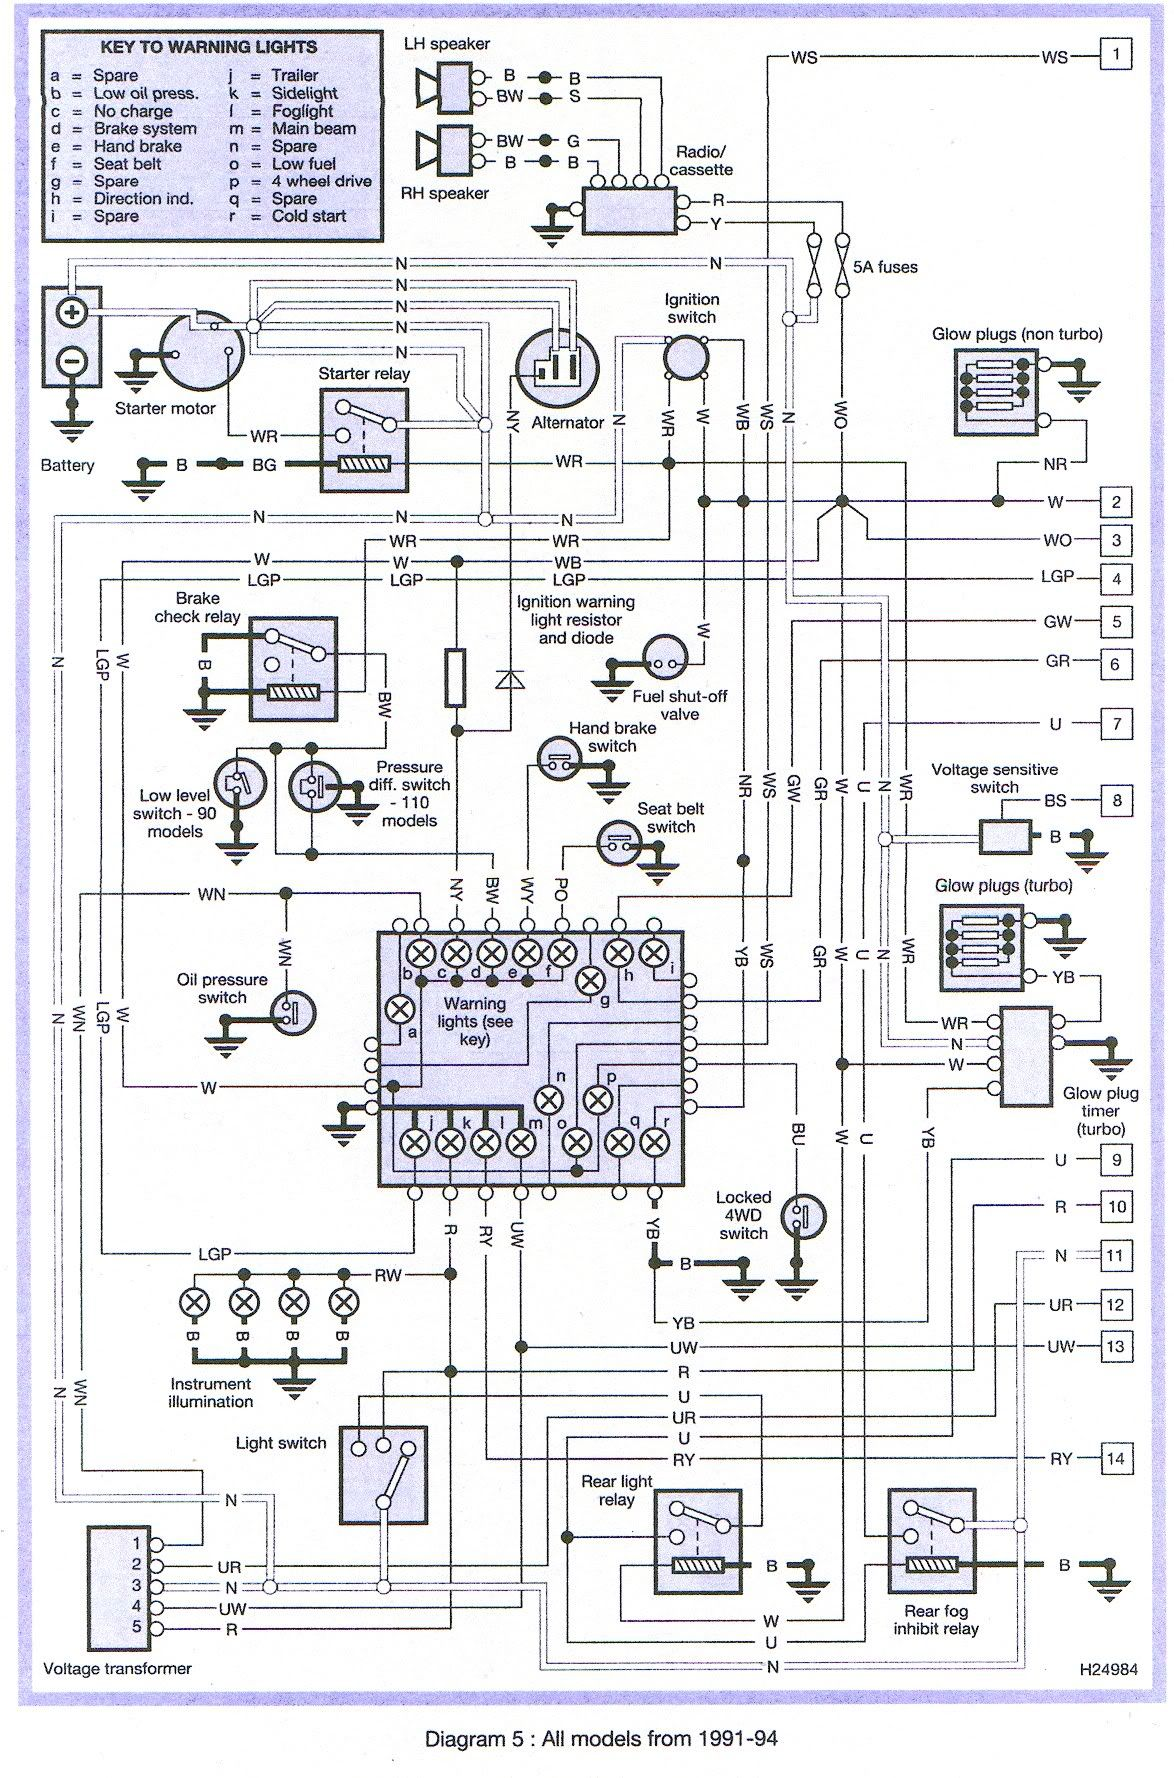 land rover discovery fuel pump wiring diagram land rover discovery wiring diagram | manual repair with ... land rover discovery 1 radio wiring diagram #12